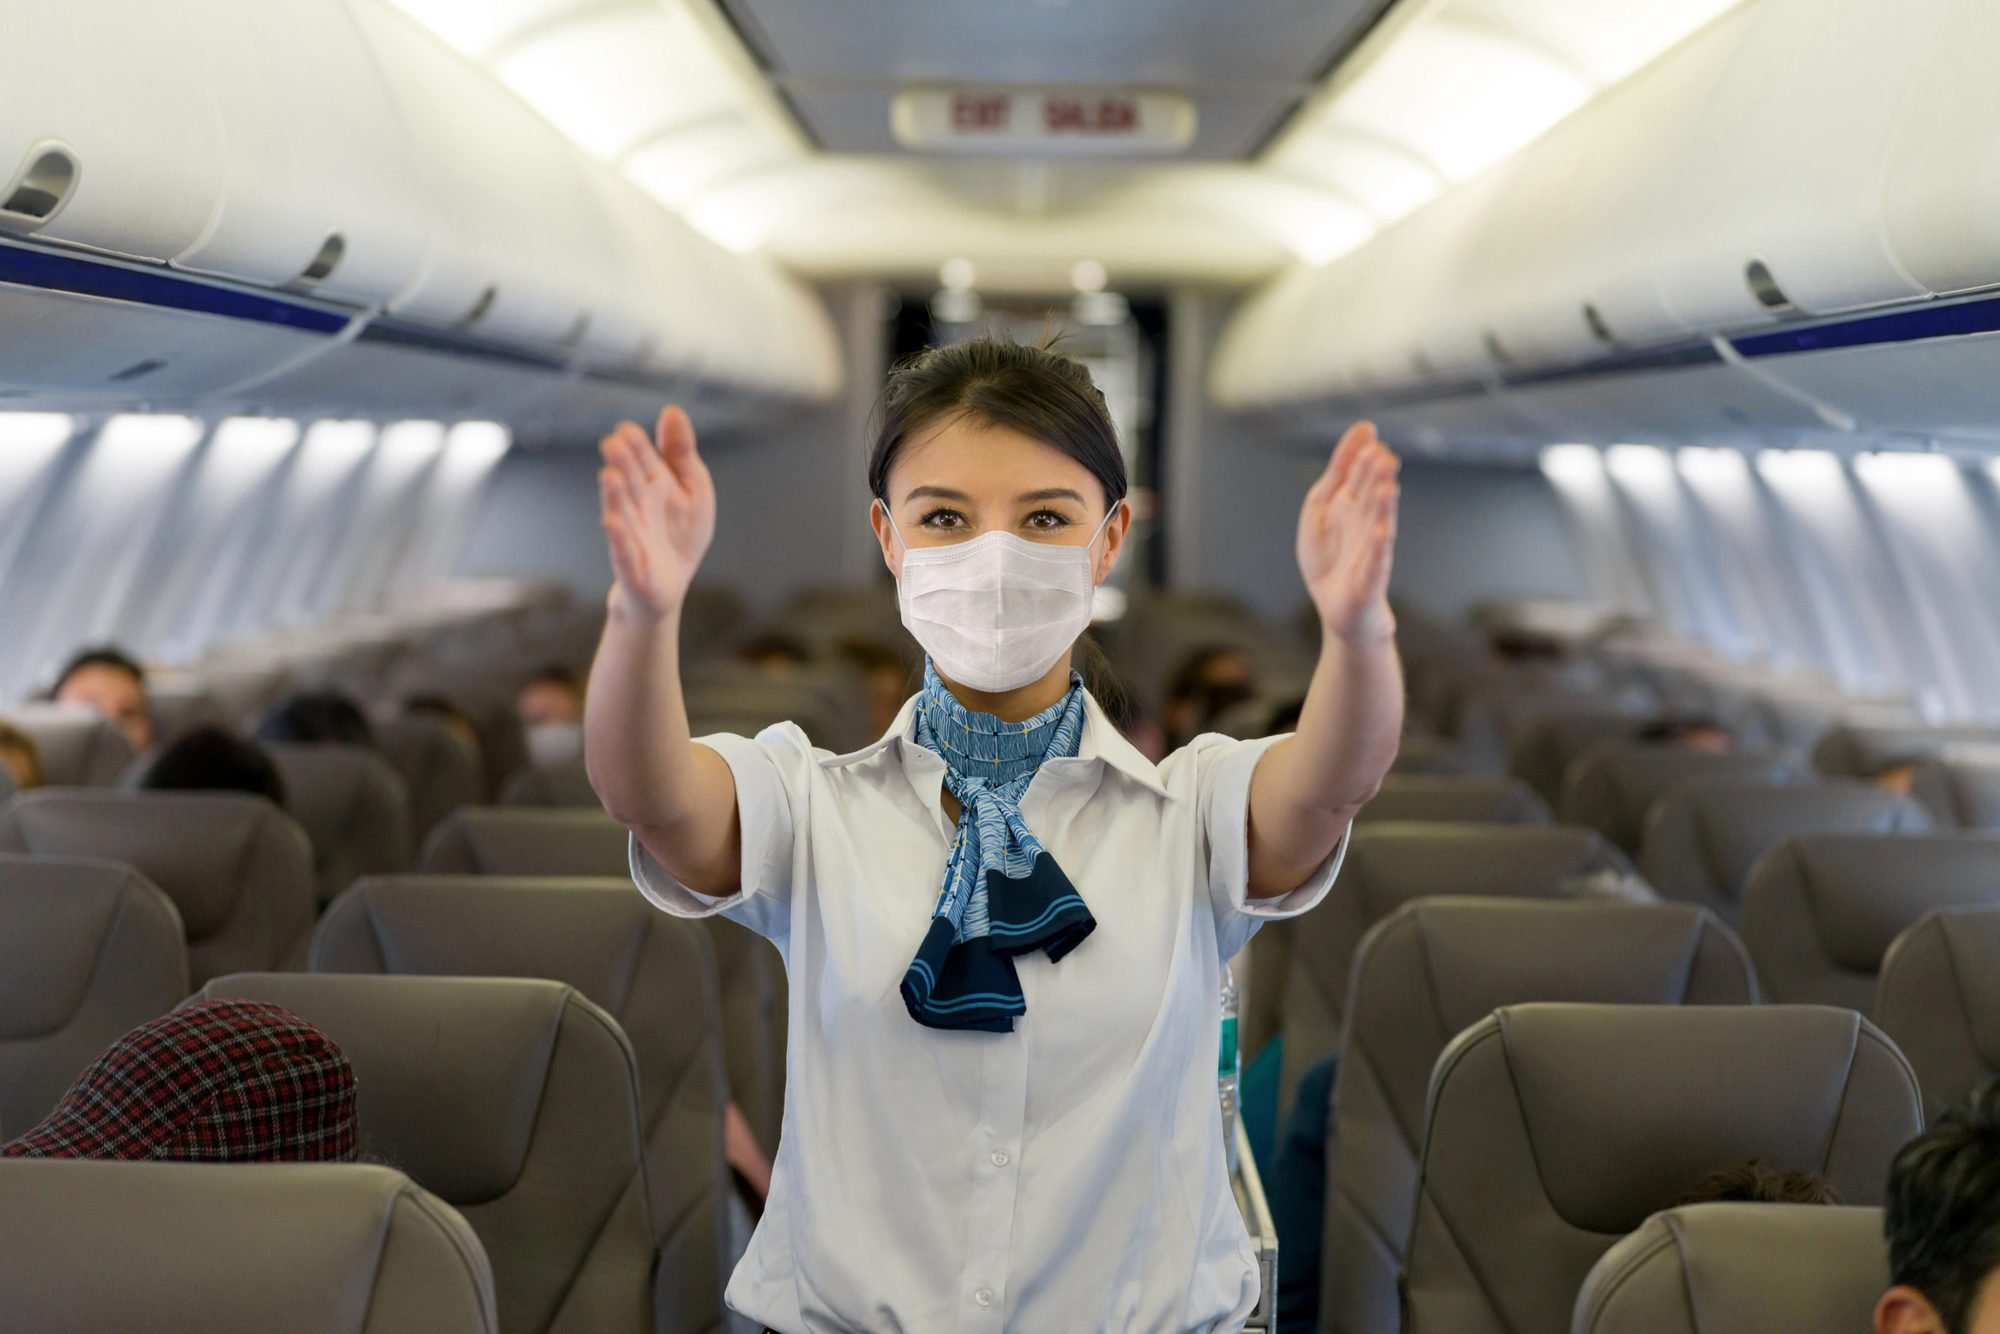 Flight attendant showing the emergency exit in an airplane wearing a facemask